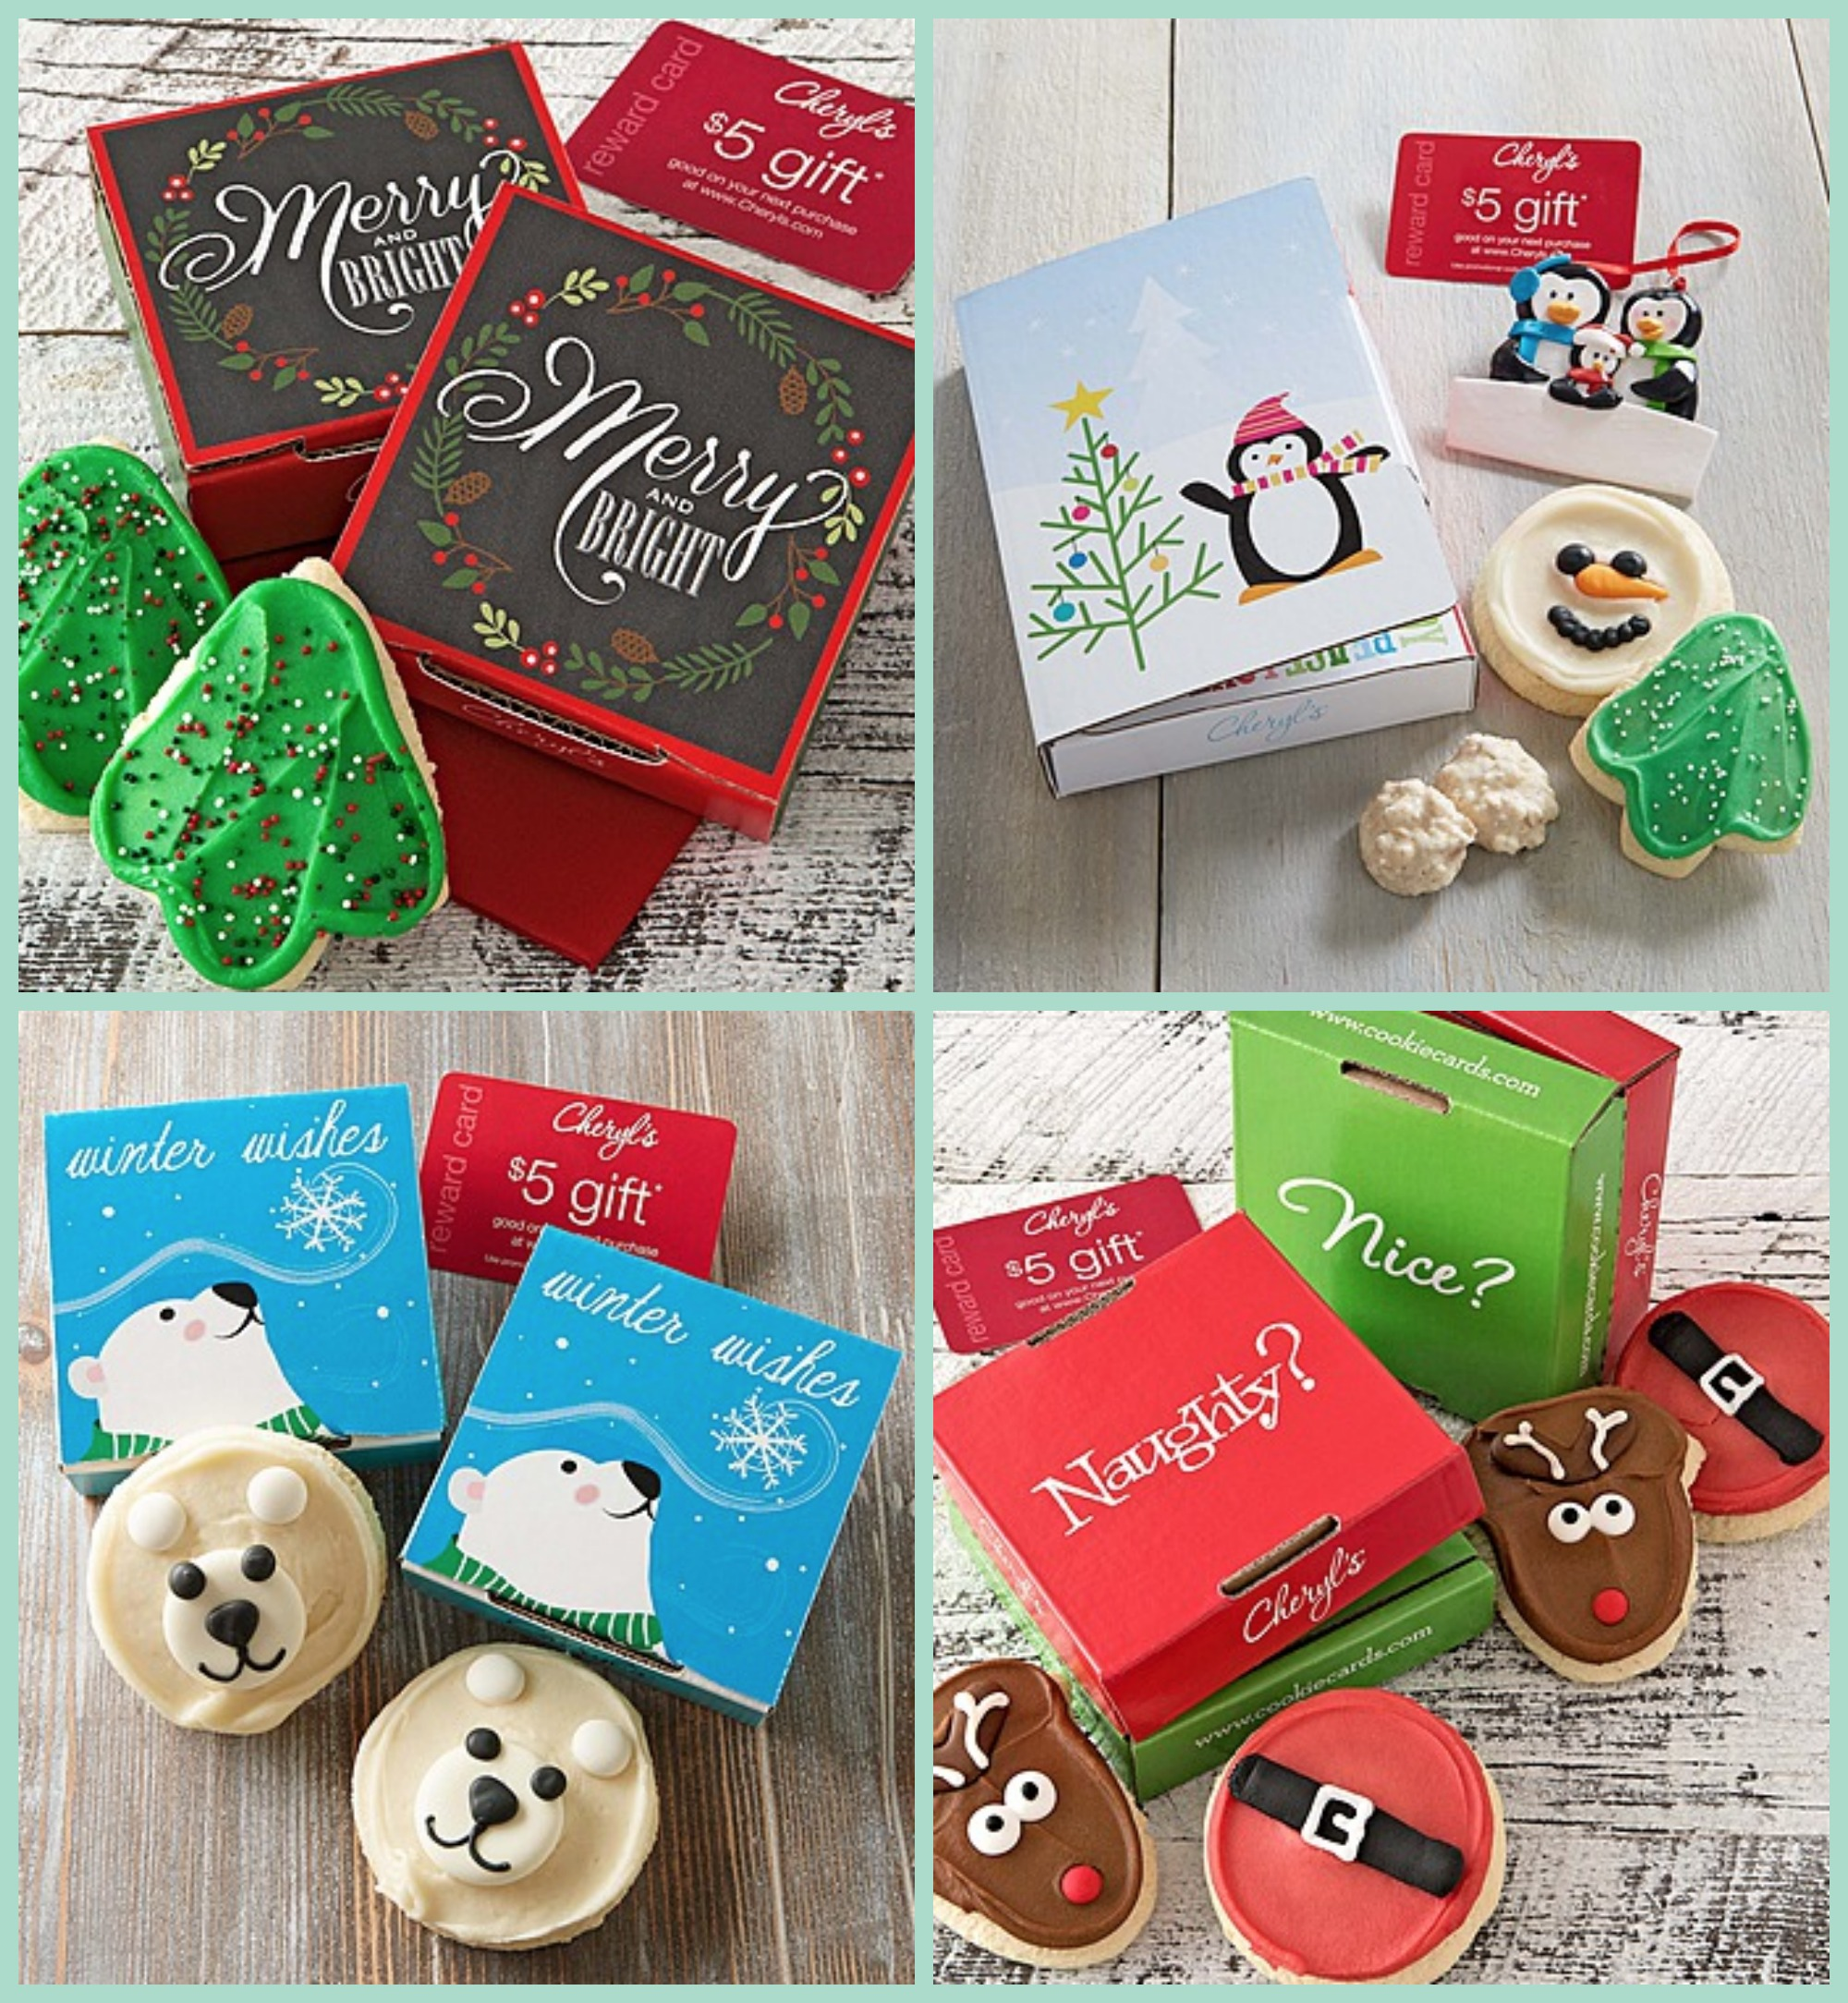 Cheryls Holiday Cookie Cards 5 Shipped Groupon Deal